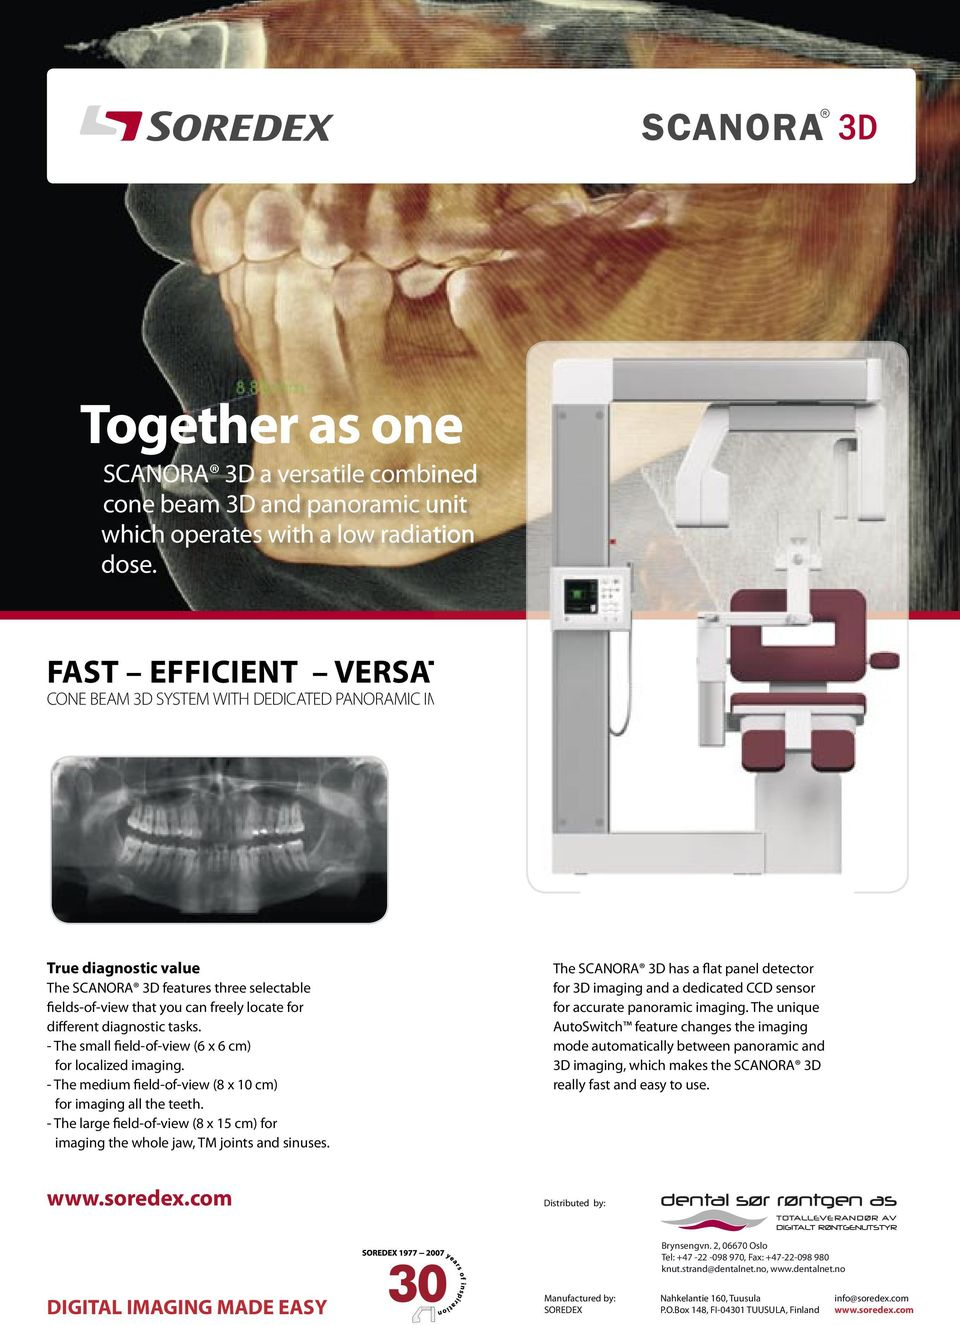 diagnostic tasks. - The small field-of-view (6 x 6 cm) for localized imaging. - The medium field-of-view (8 x 10 cm) for imaging all the teeth.